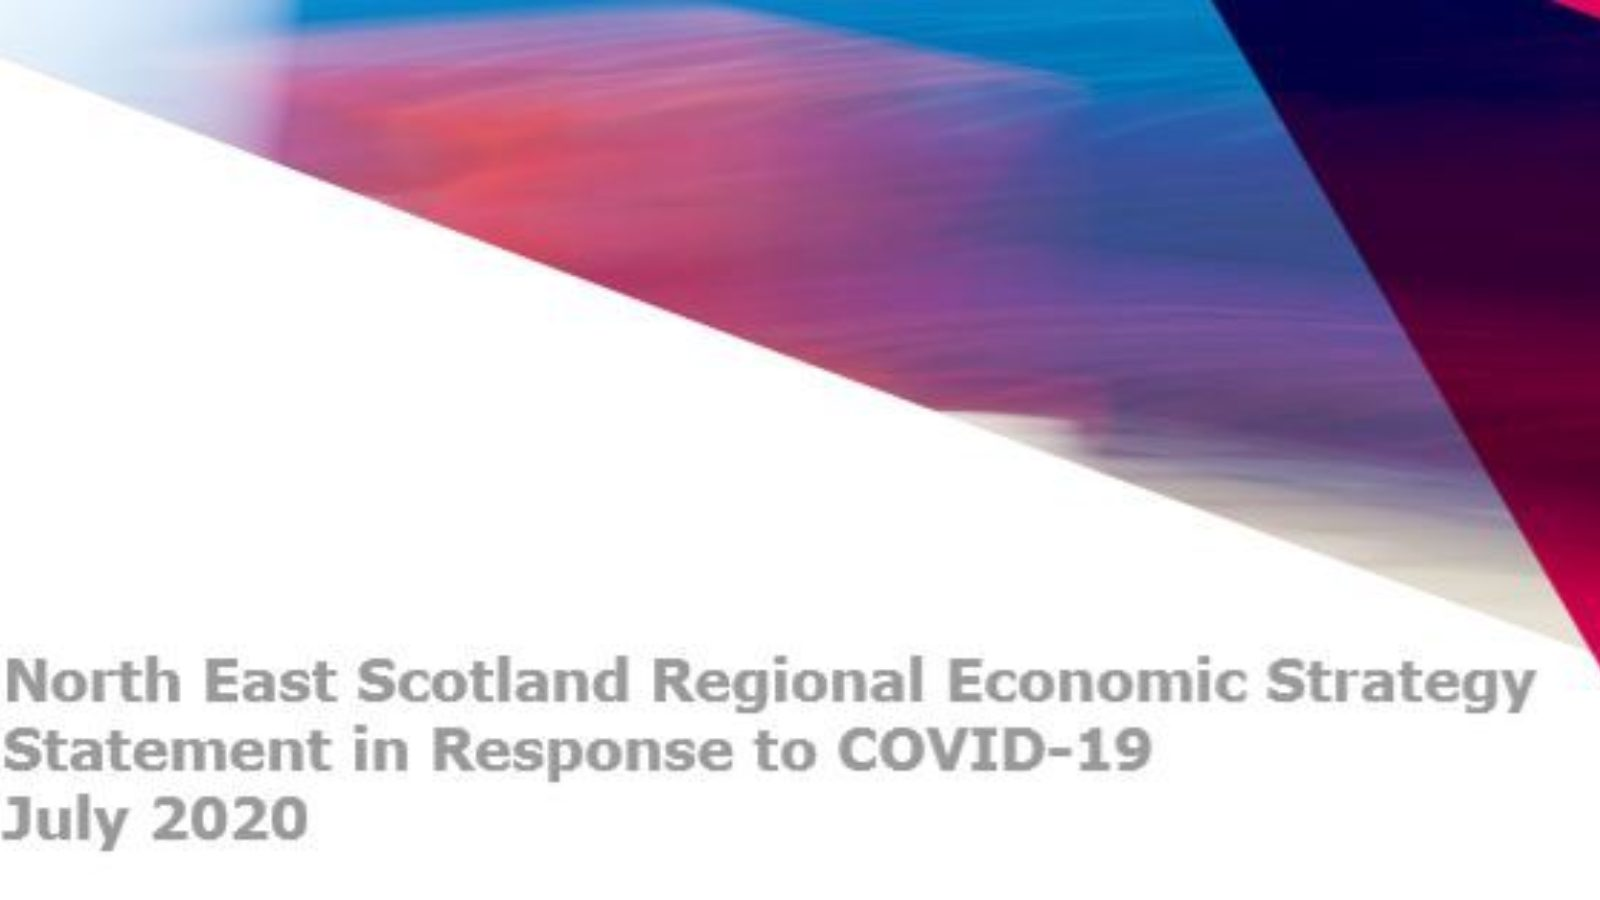 Regional Economic Strategy update sets out priority actions